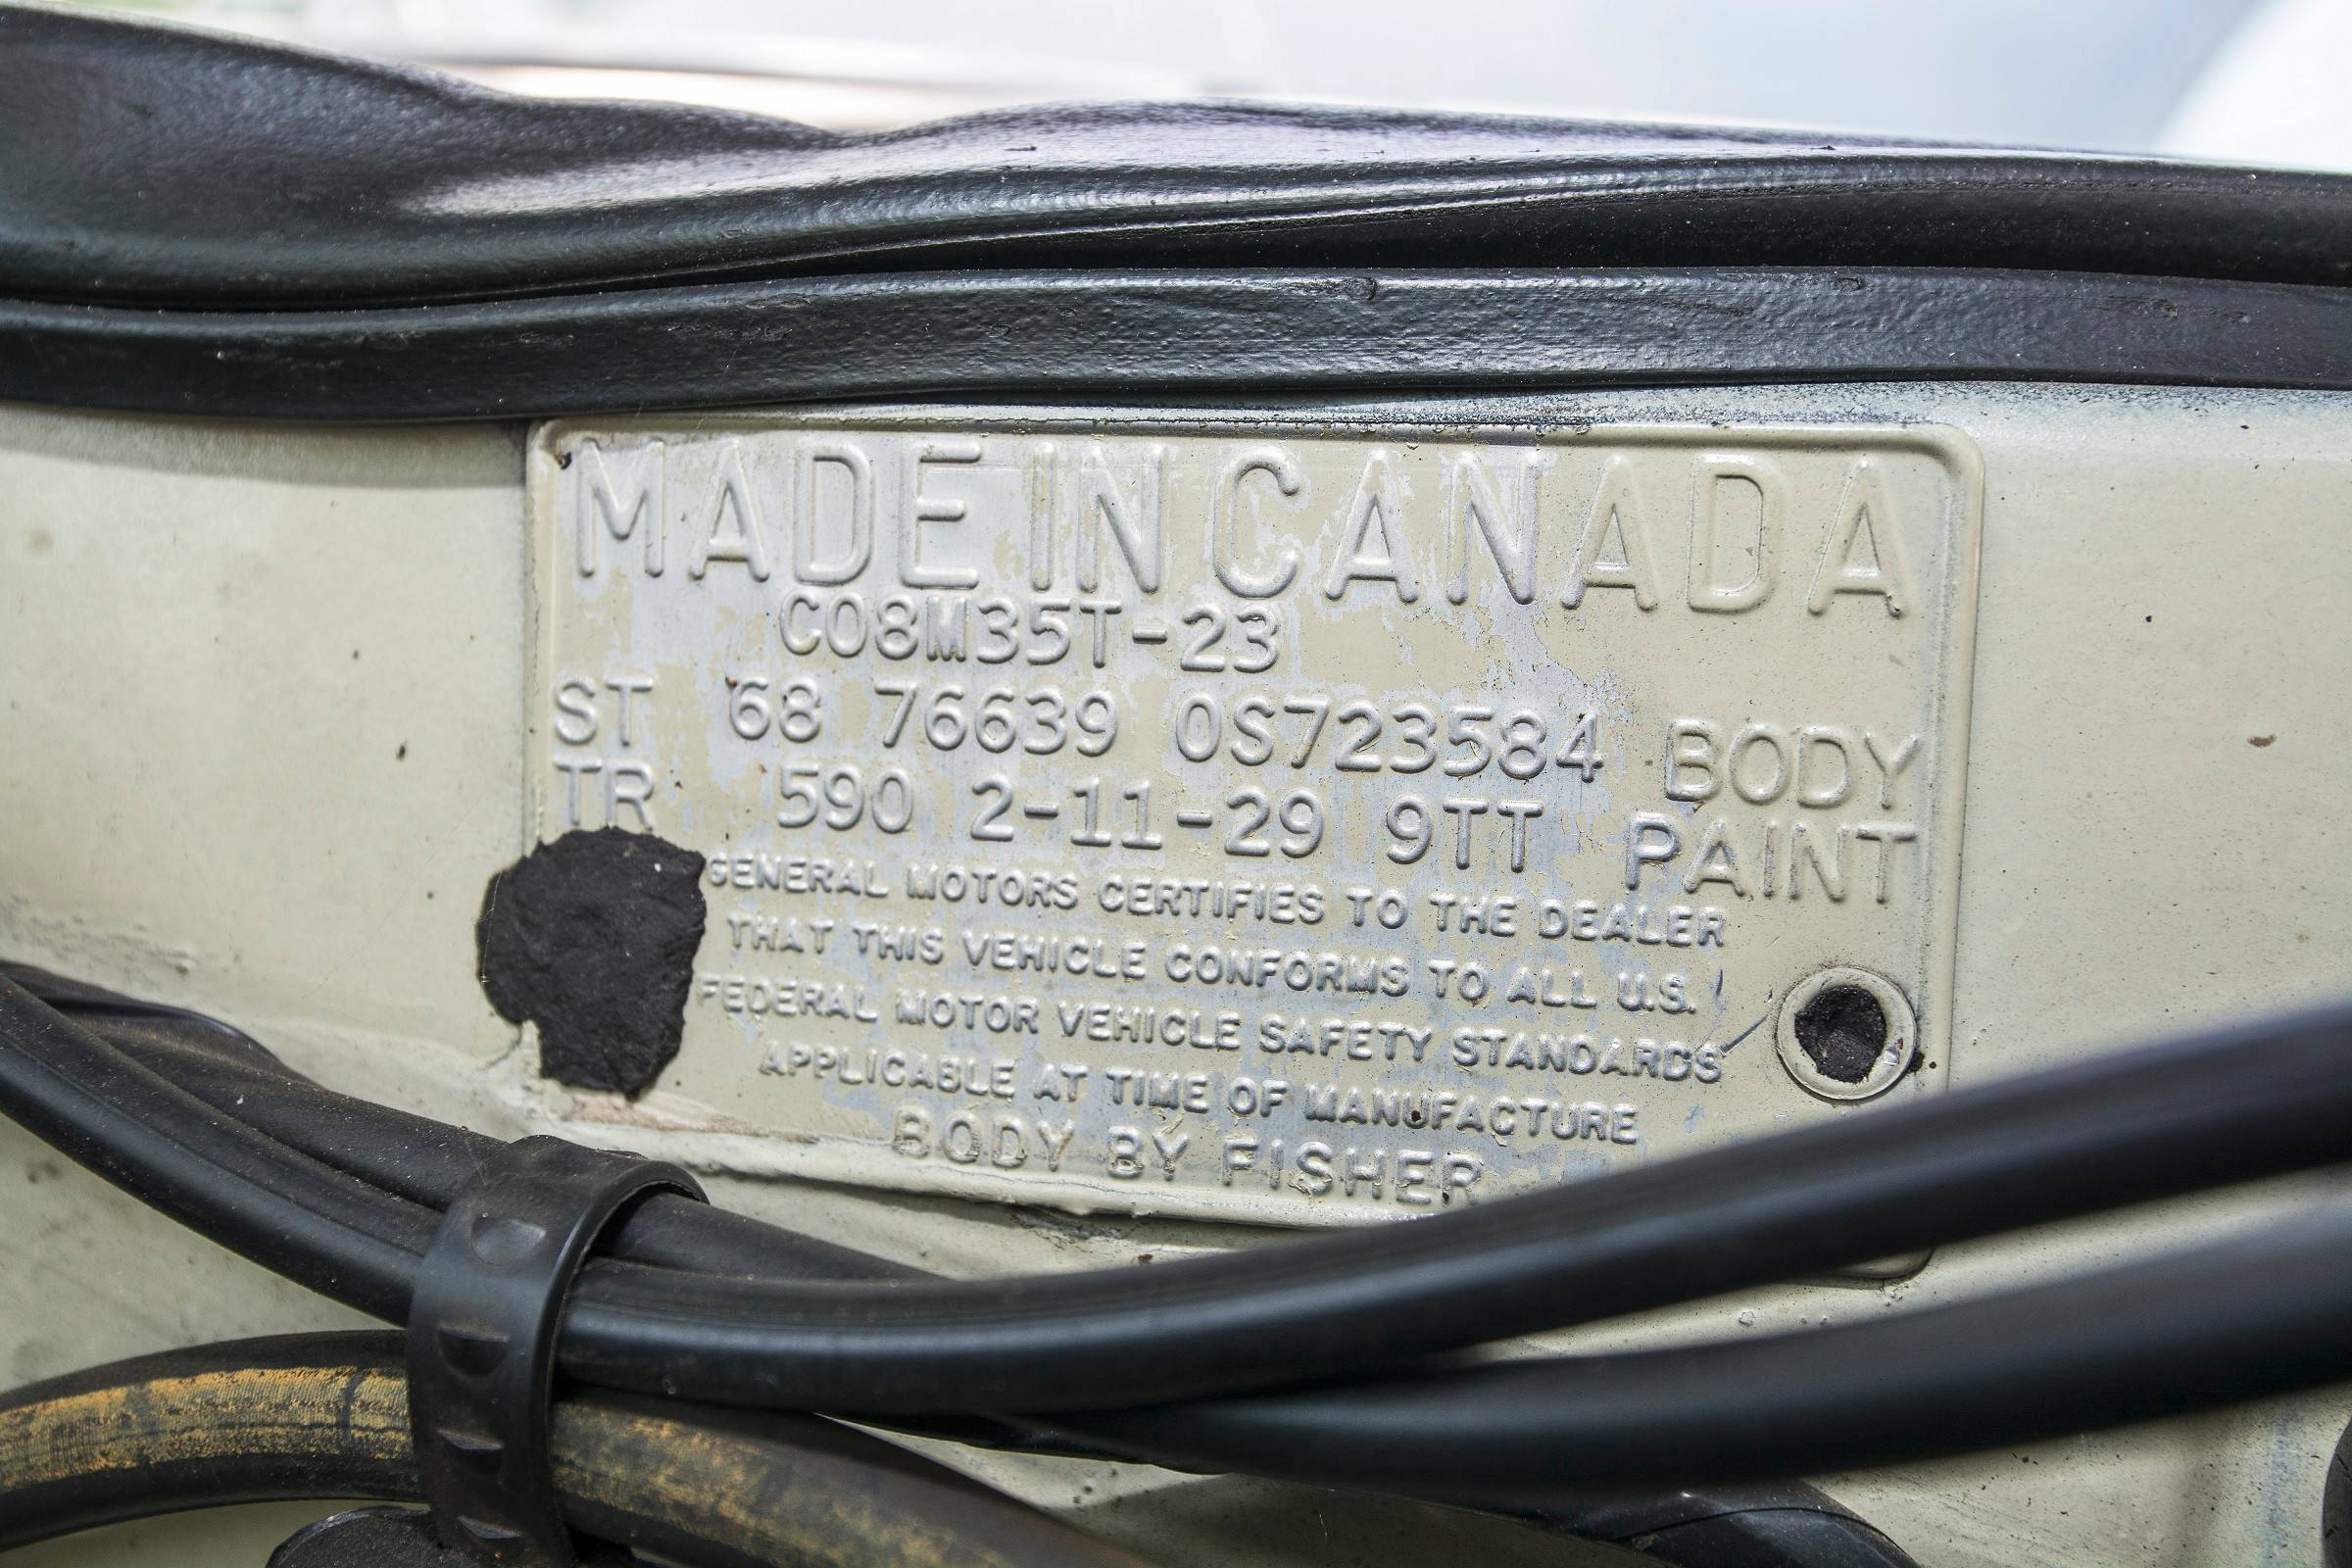 This plaque on the engine compartment firewall gives evidence of the car's origin.